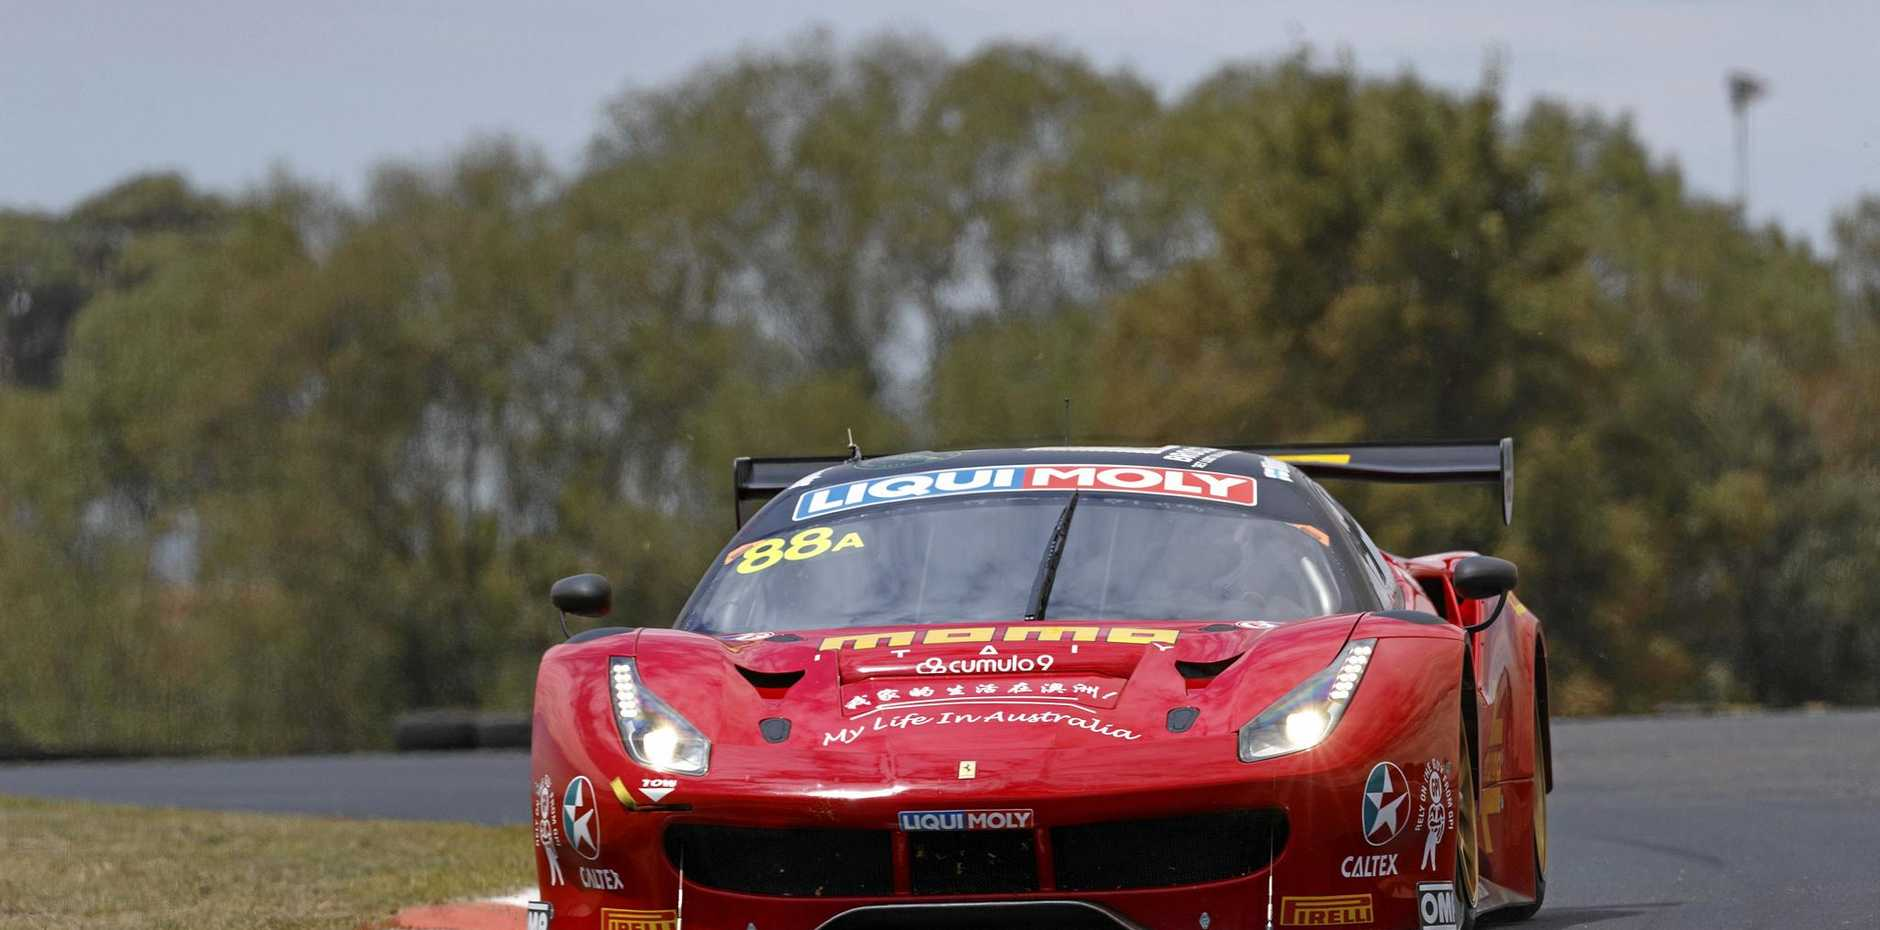 The Maranello Motorsport Ferrari 488 GT3 of drivers Toni Vilander of Finland and Jamie Whincup and Craig Lowndes of Australia.